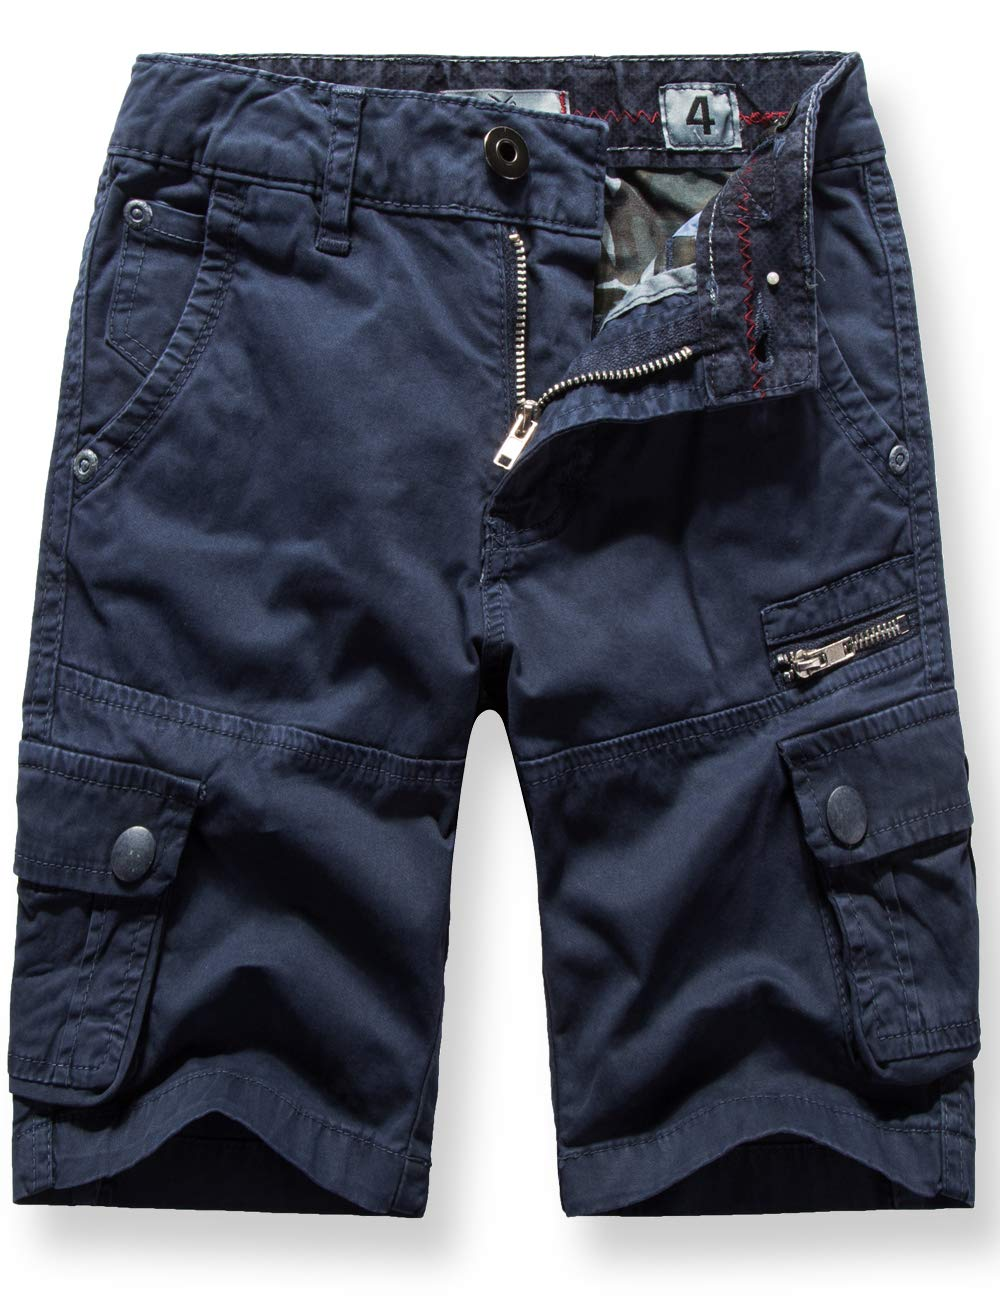 WIYOSHY Boys' Cargo Shorts Adjustable Waist Multi Pocket Outdoor Denim Shorts (Navy-2, 160 (Size 14))